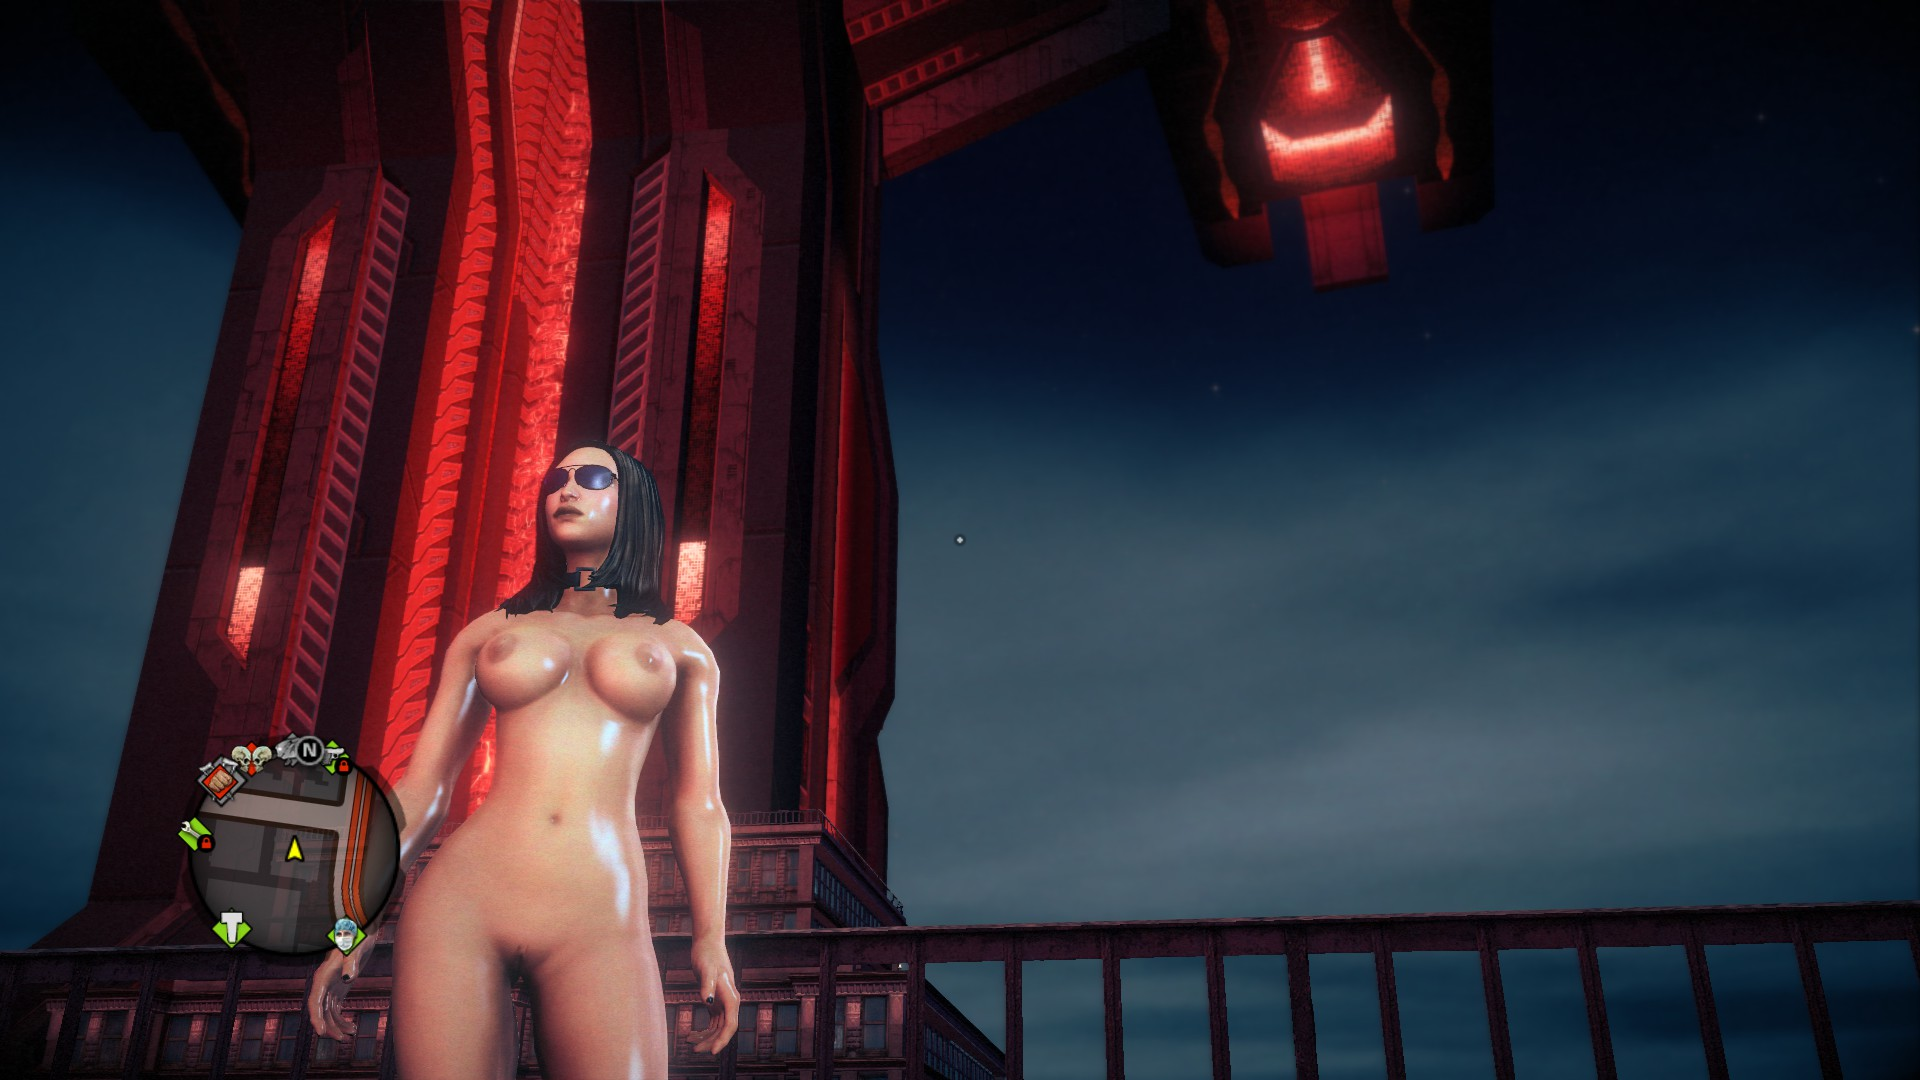 Saints row iv nude hair hentai image